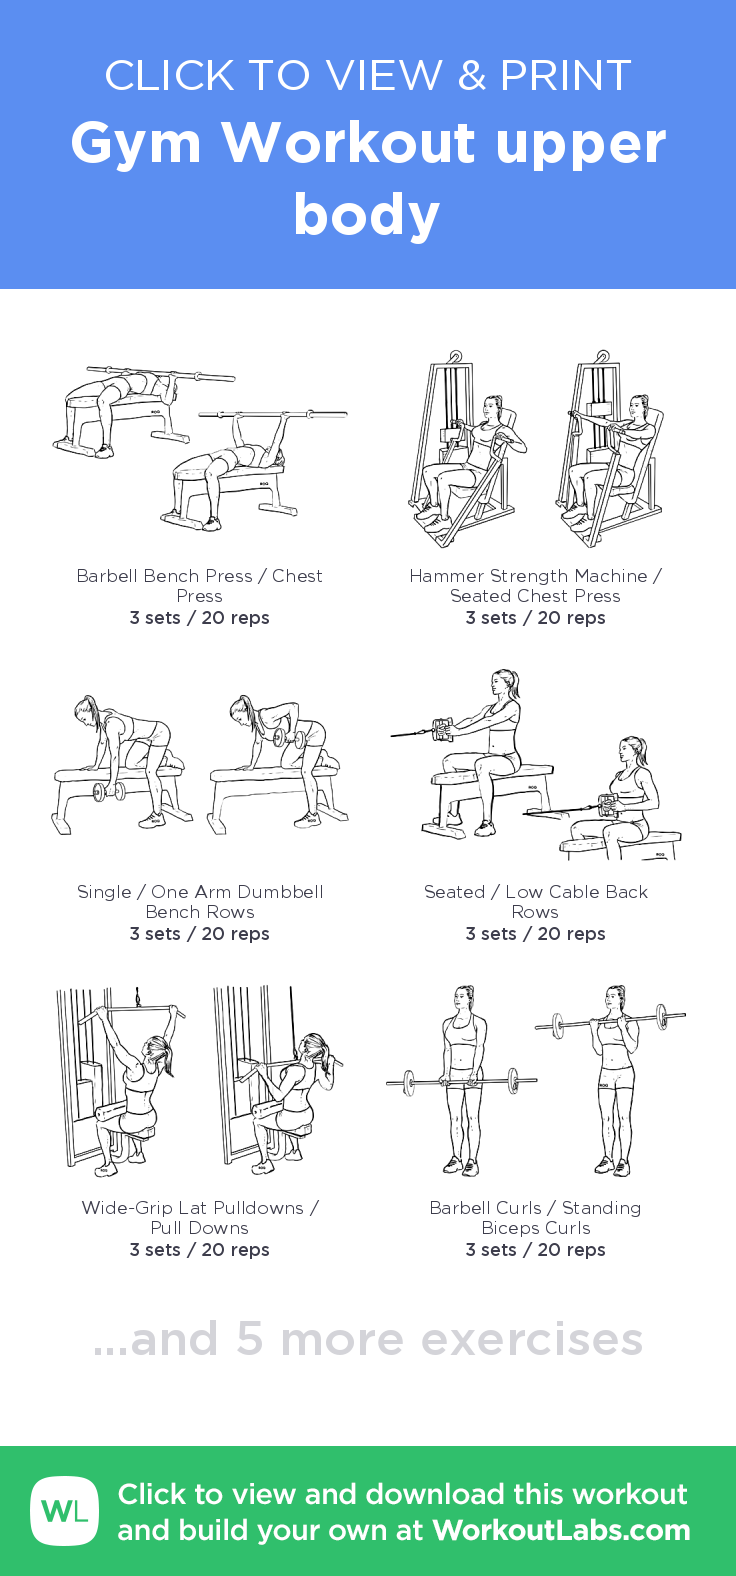 Gym Workout Upper Body Click To View And Print This Illustrated Exercise Plan Created With WorkoutLabsFit